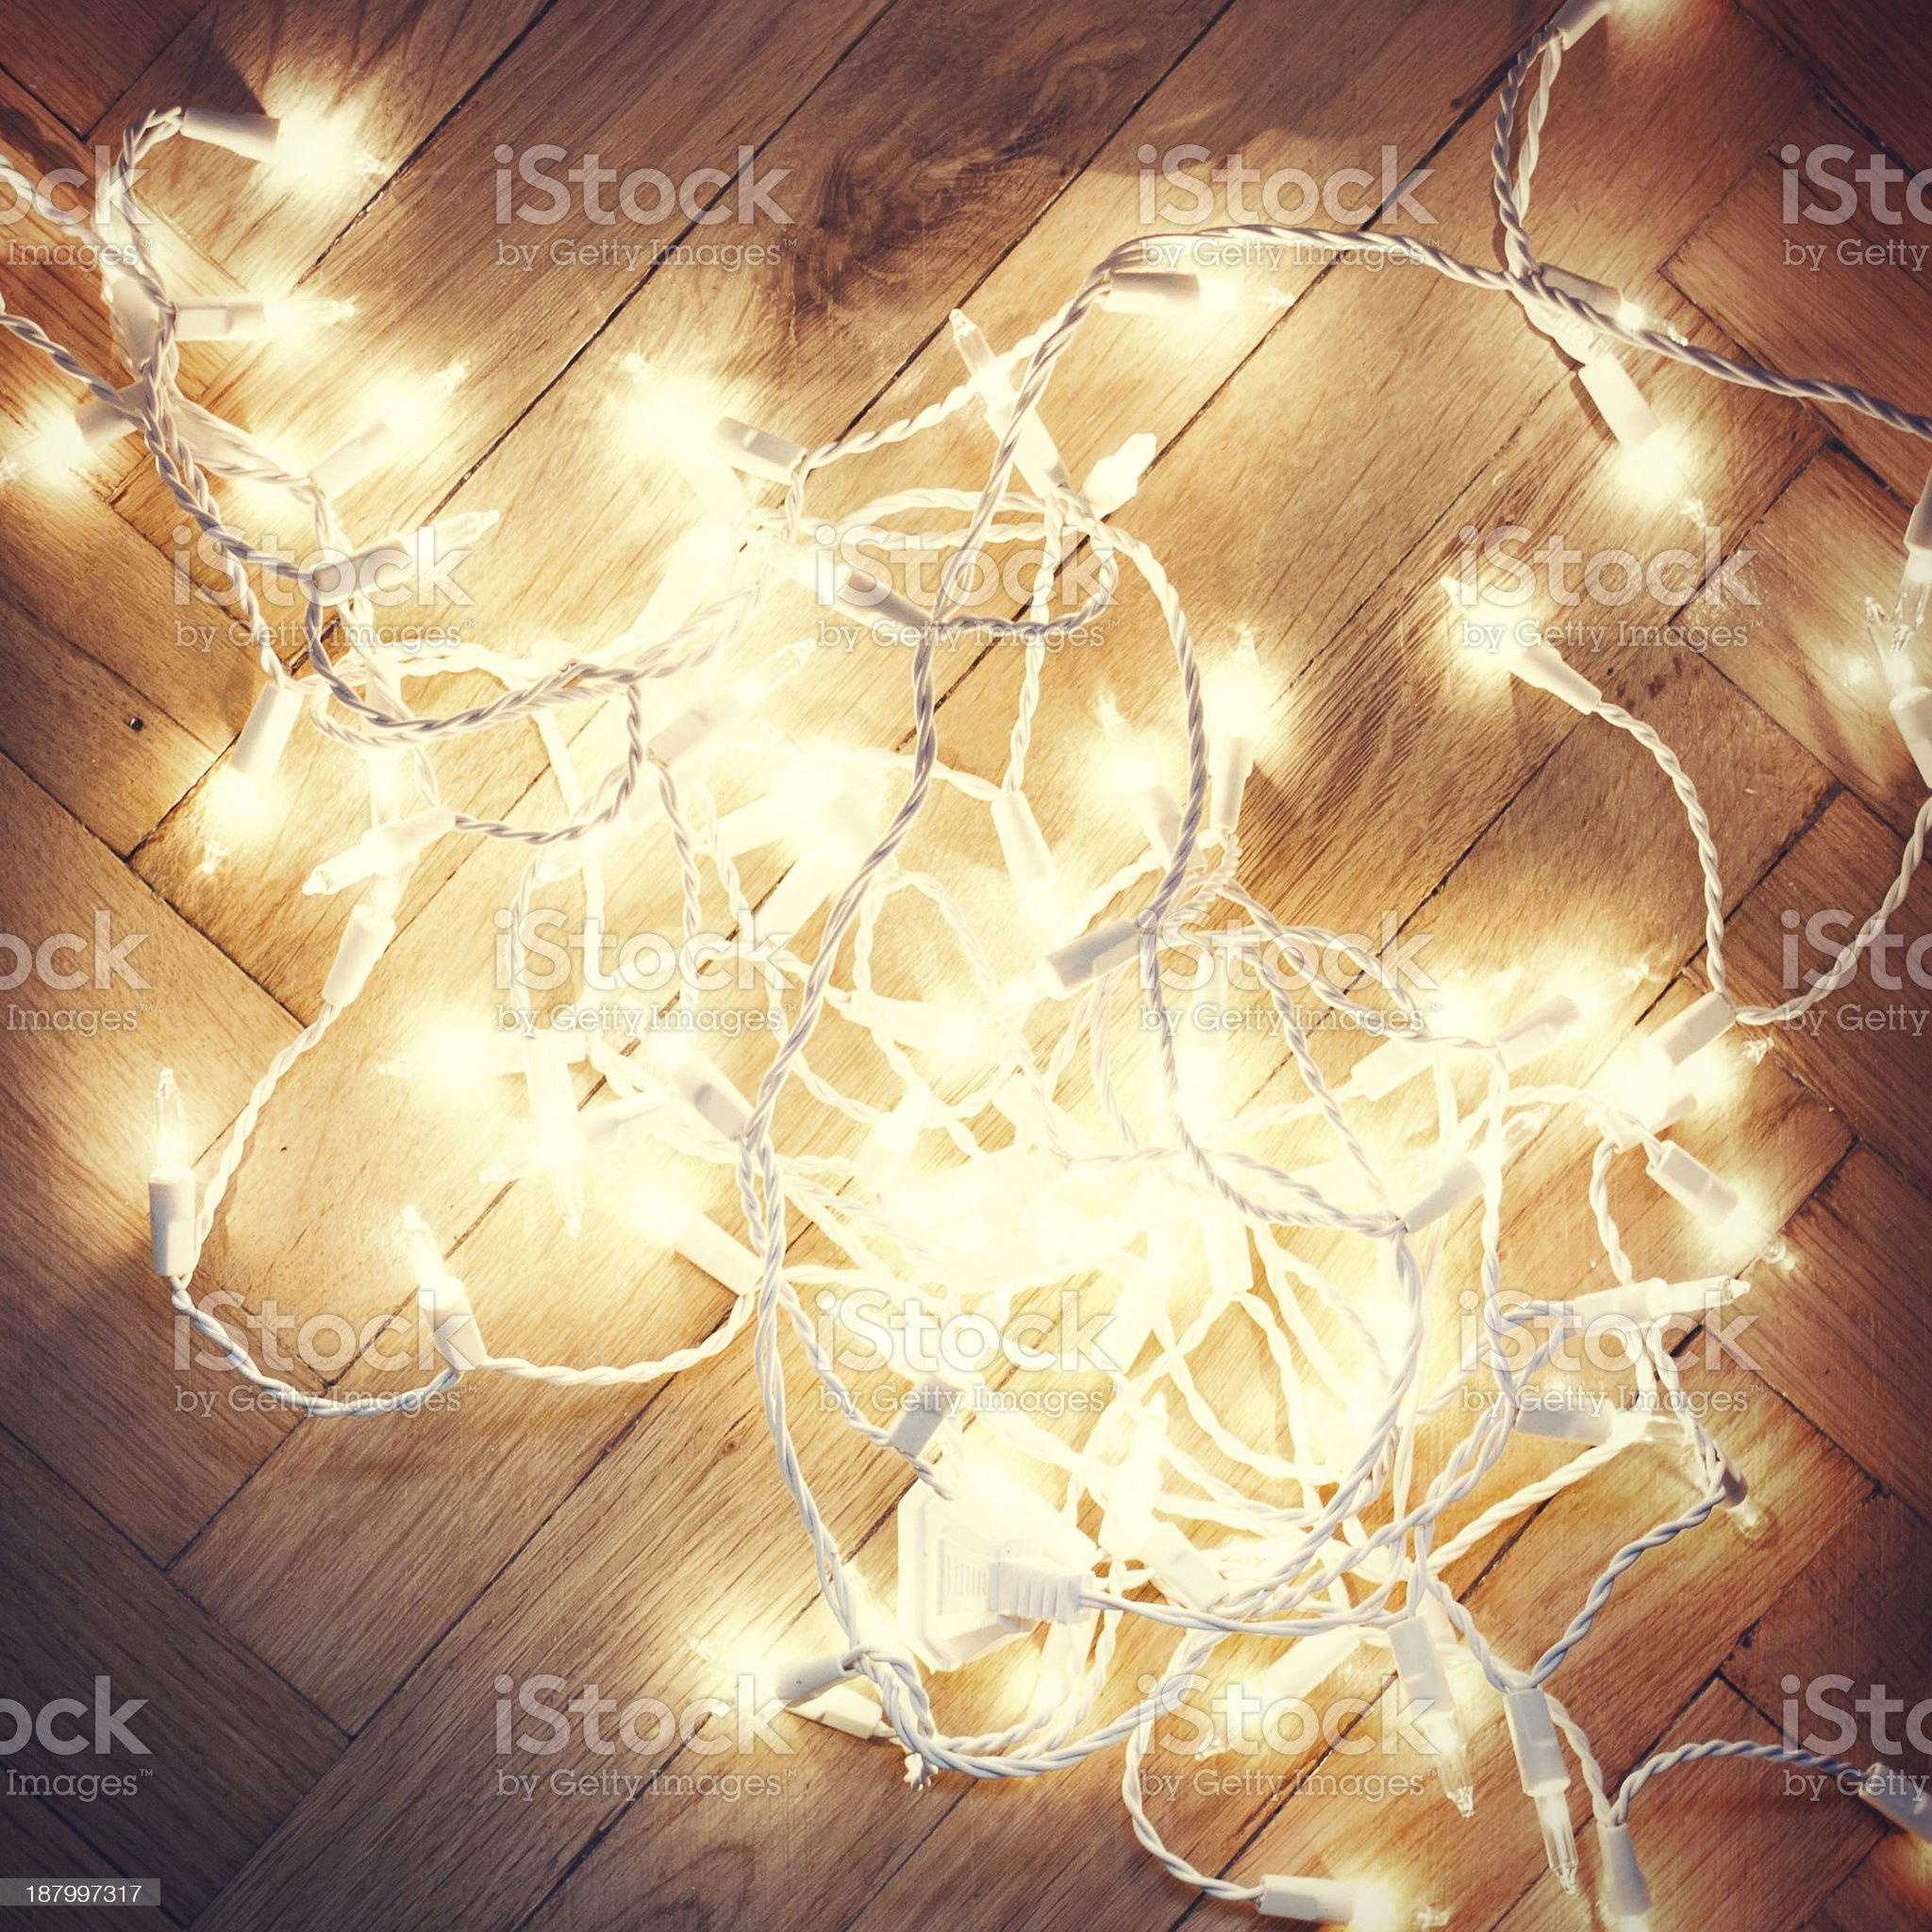 Christmas lights garland on a old antique wooden parquet floor, royalty-free stock photo